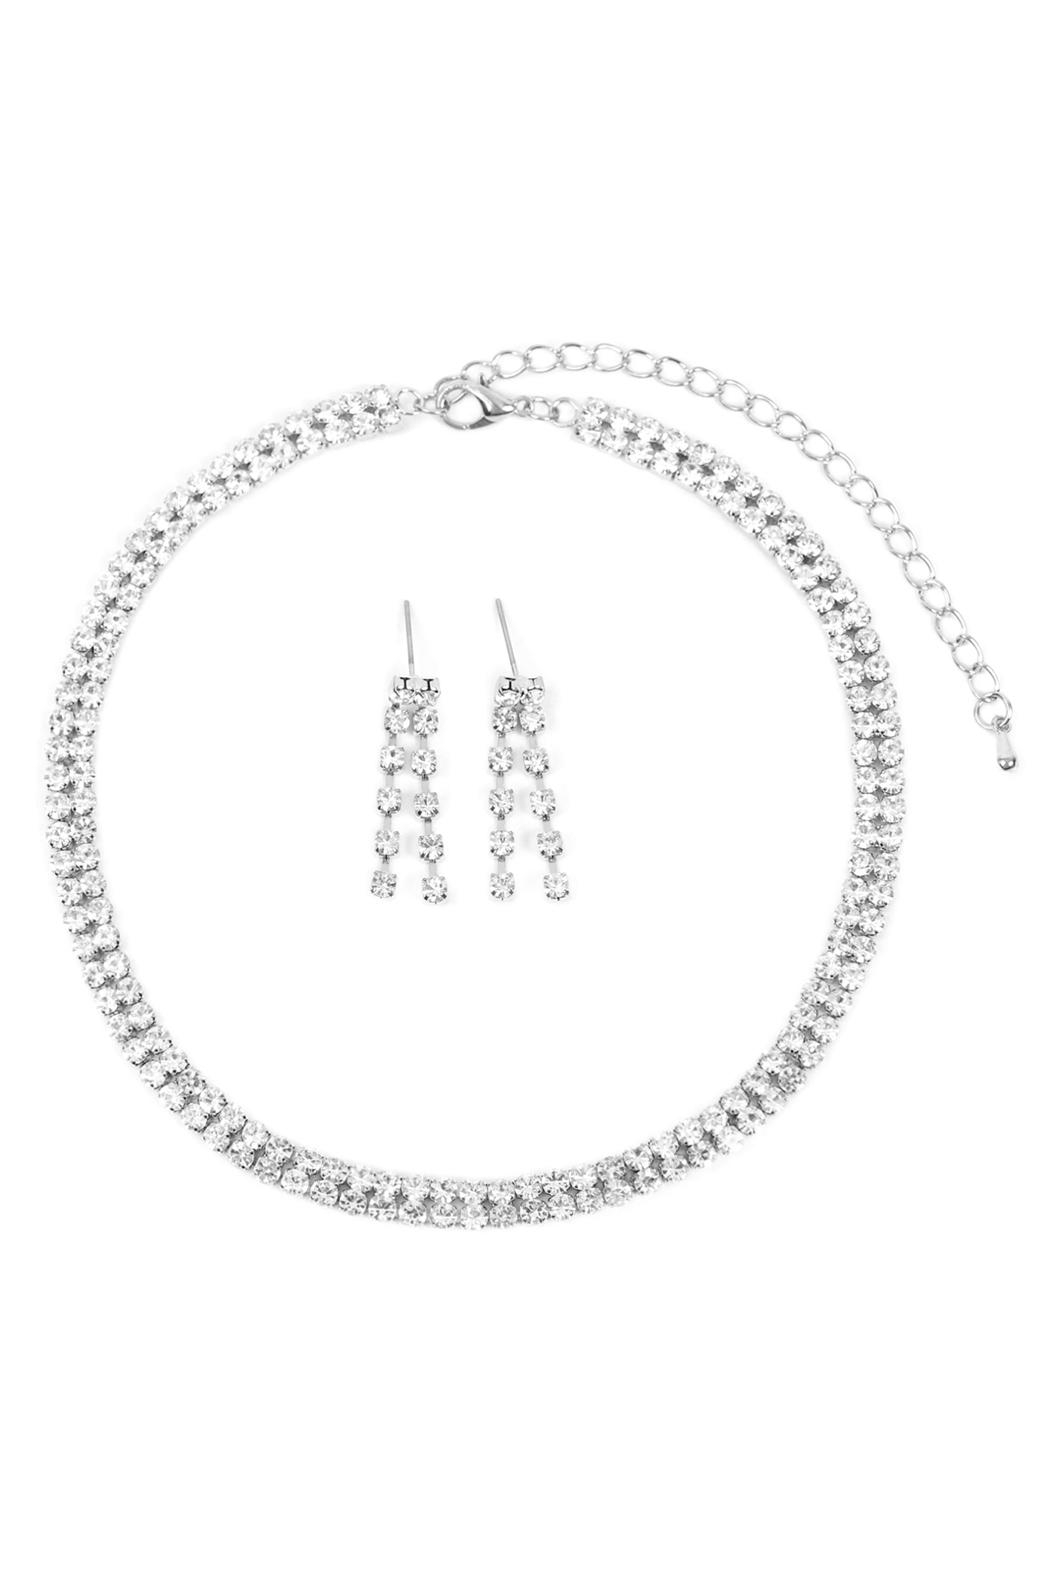 Riah Fashion Double-Line-Choker-Necklace-And-Earring-Set - Main Image